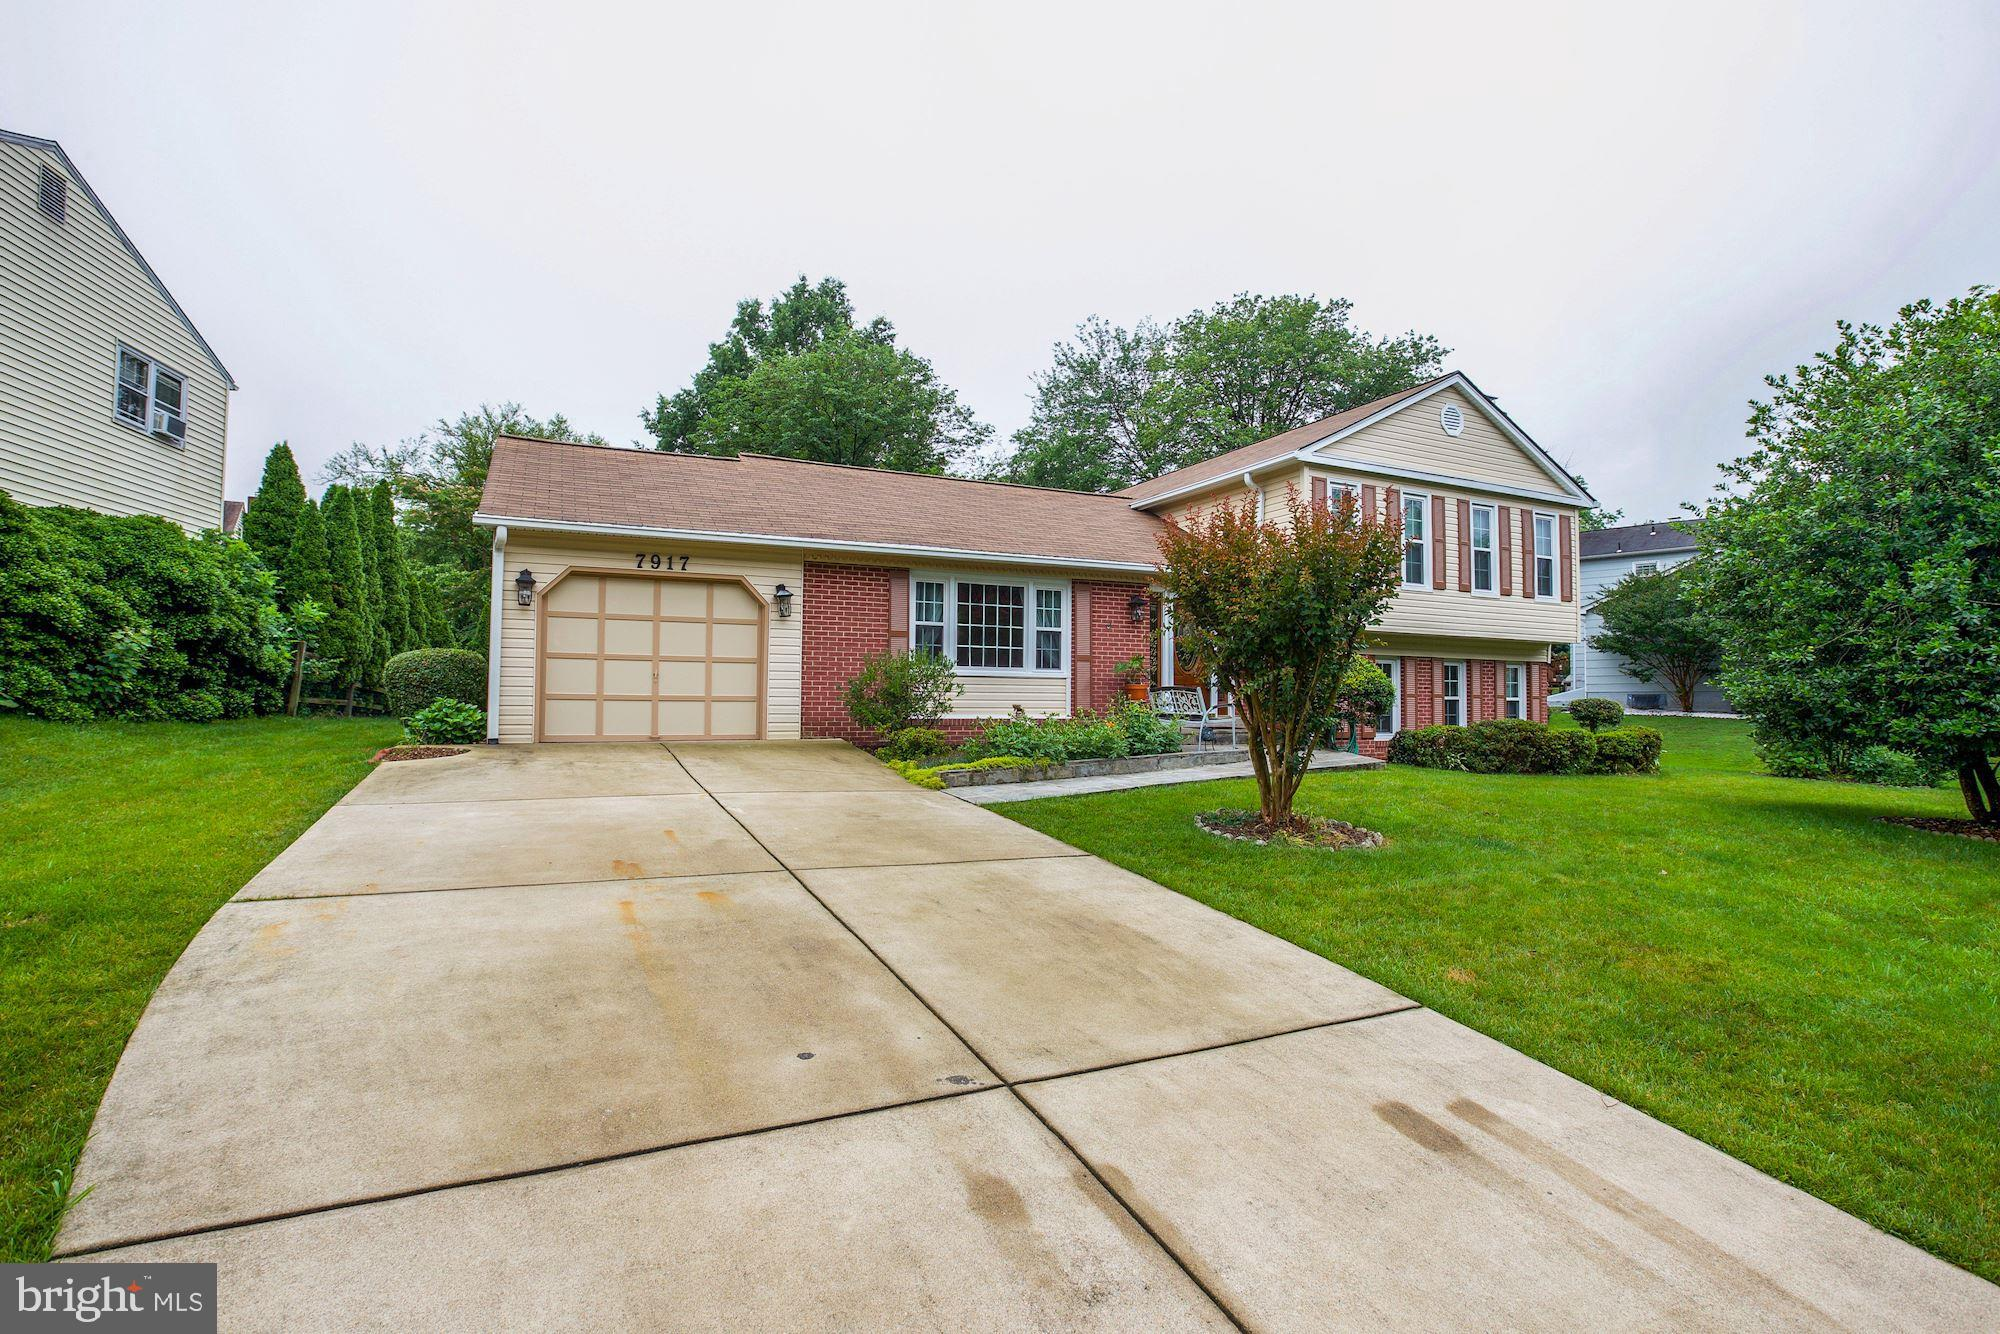 Impeccable 4 bedroom and 3 full bathroom  split level. New roof in 2015, new windows in 2015. Full finished walkout basement with a bedroom and a full bathroom. 4 Bedroom on upper level to include a nice Master Bedroom. Oversized sun room addition on main level. Living room, dining room with a beautiful kitchen on main level. Motivated sellers.